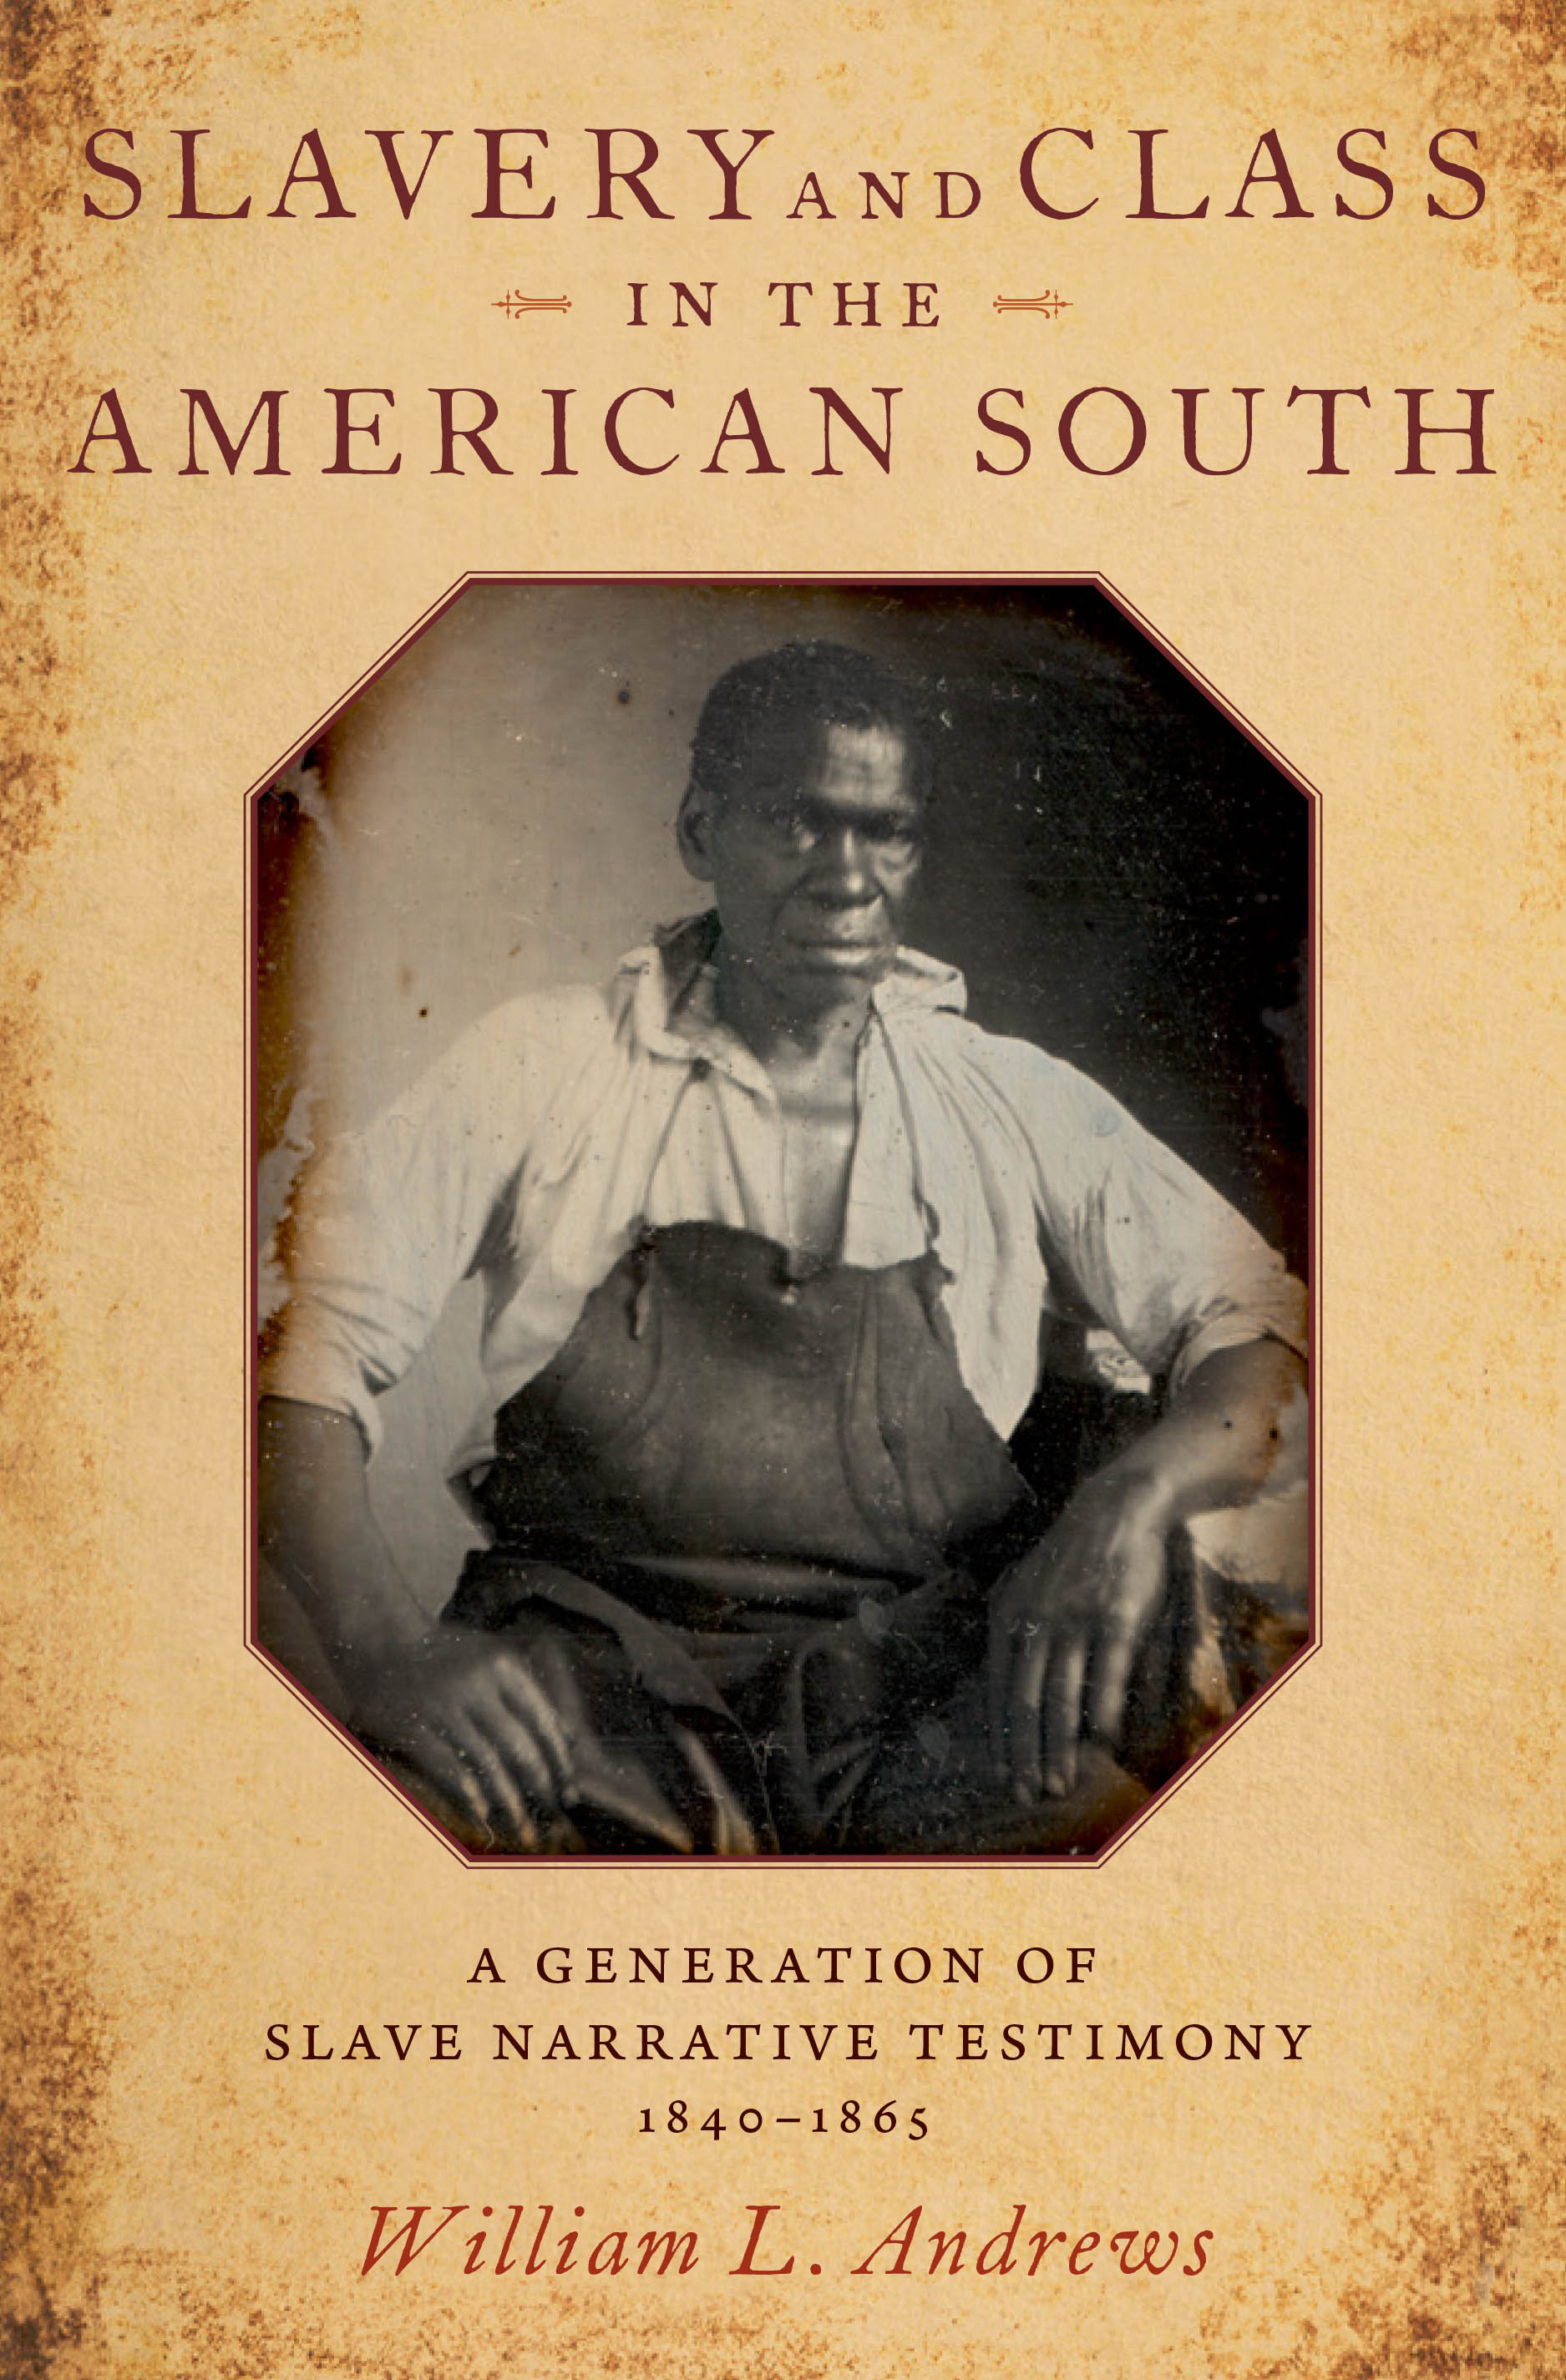 Cover Art & Design Andrews_Slavery revised